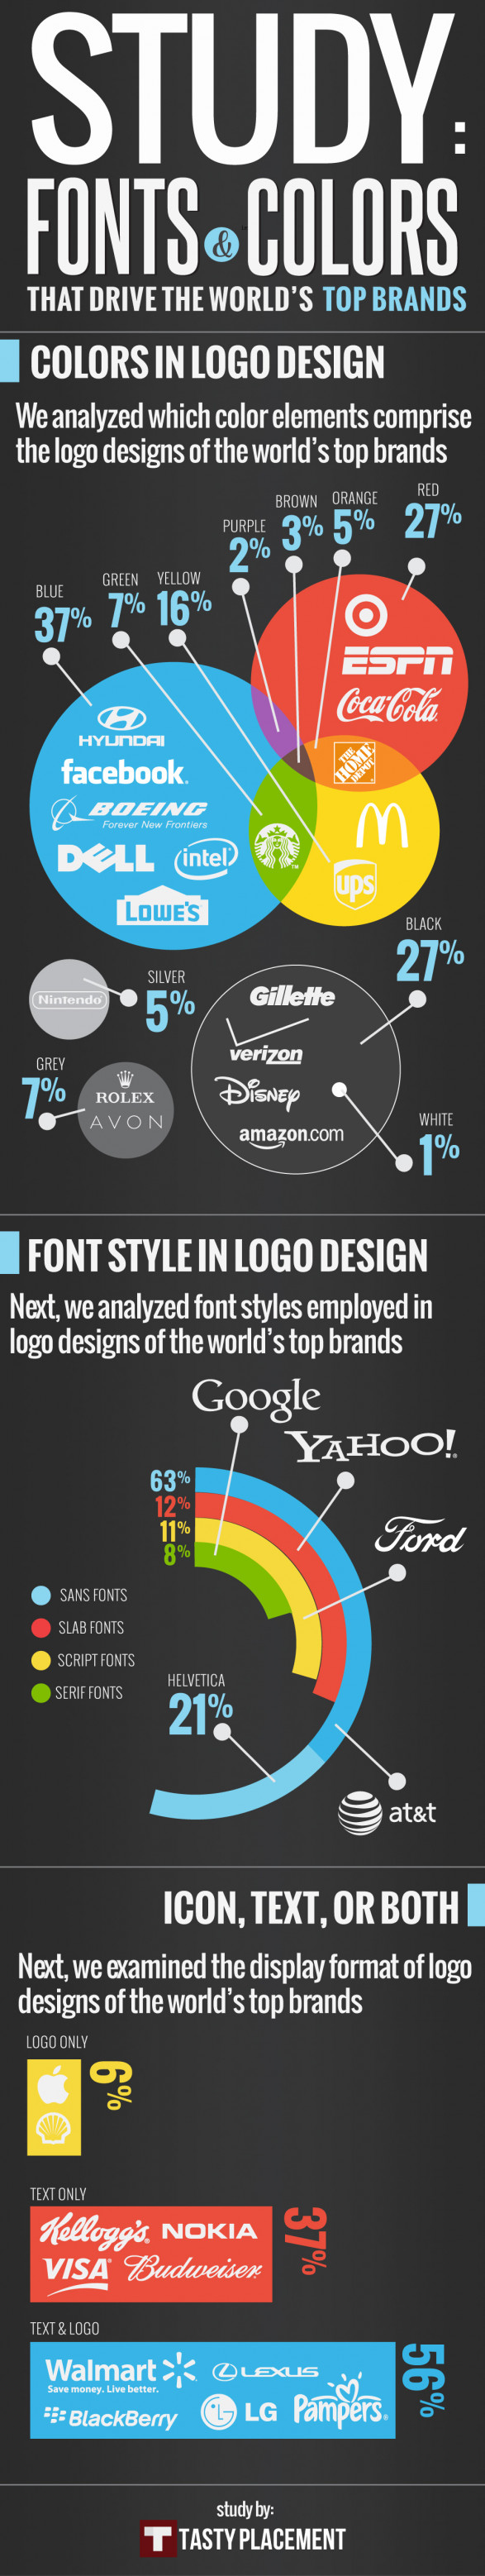 Fonts & Colors That Drive the World�s Top Brands